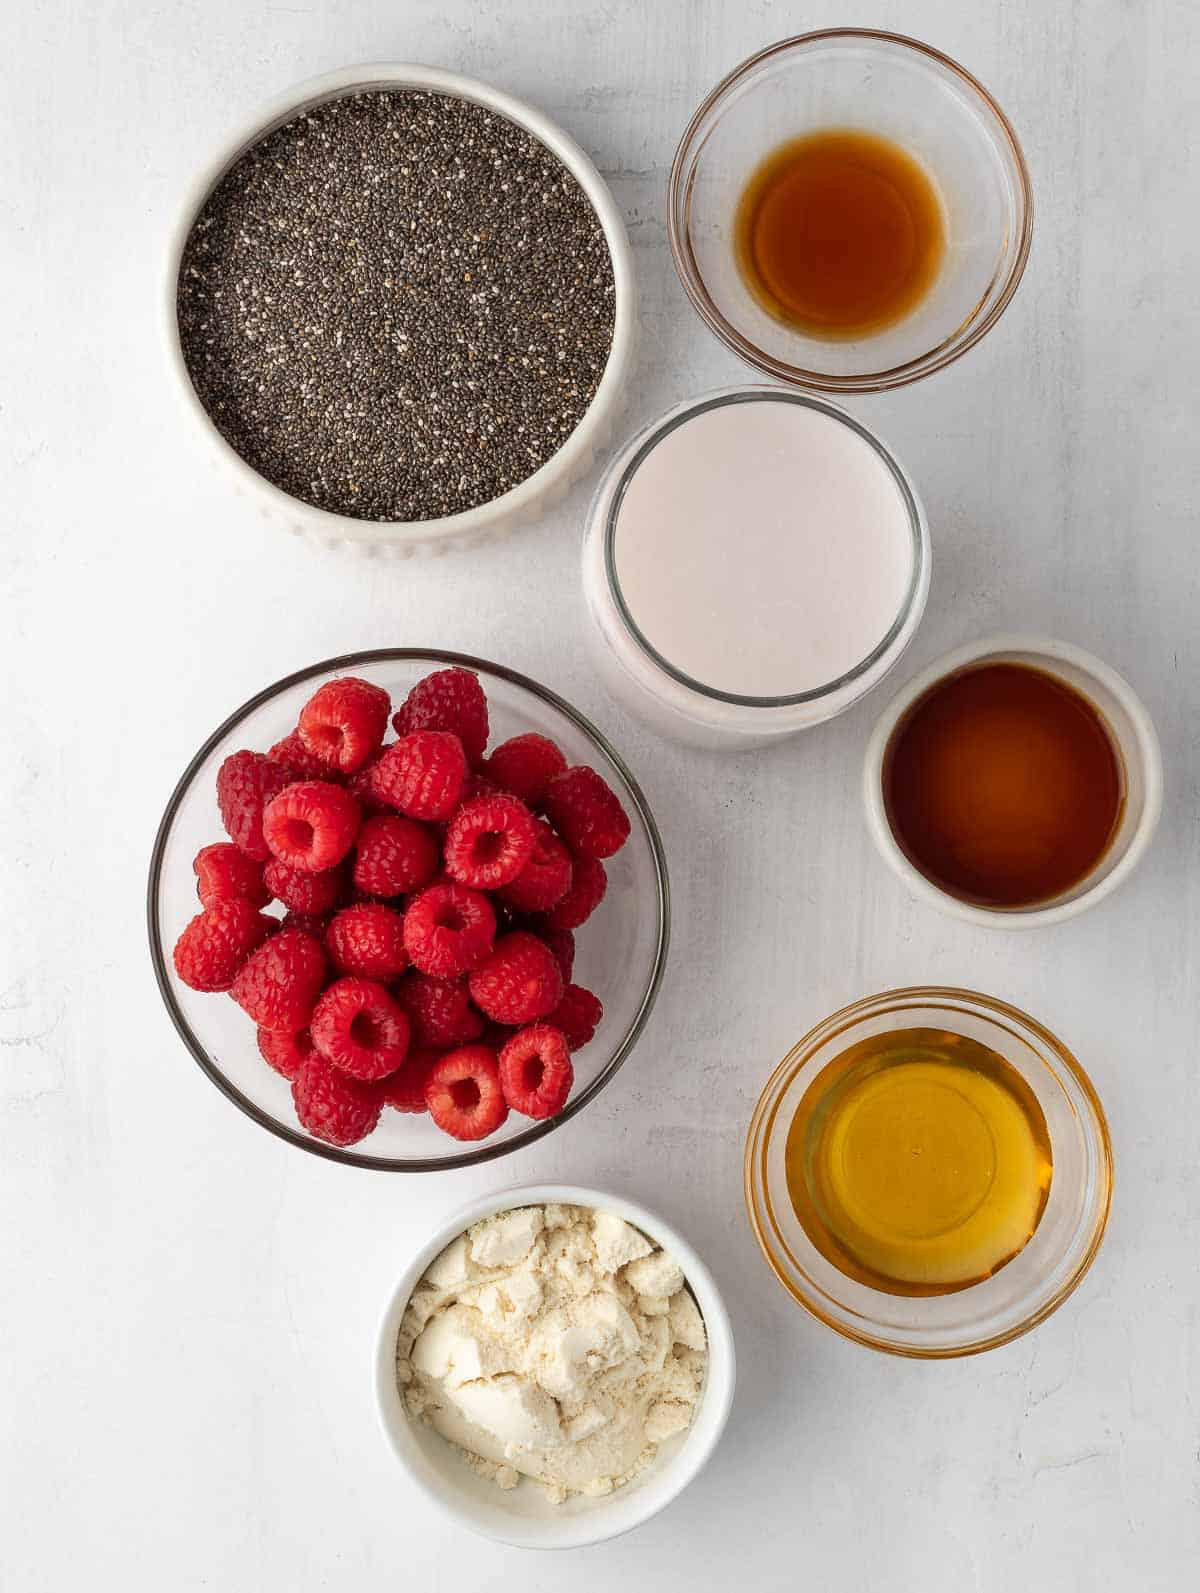 ingredients of Raspberry Protein Chia Seed Pudding laid out